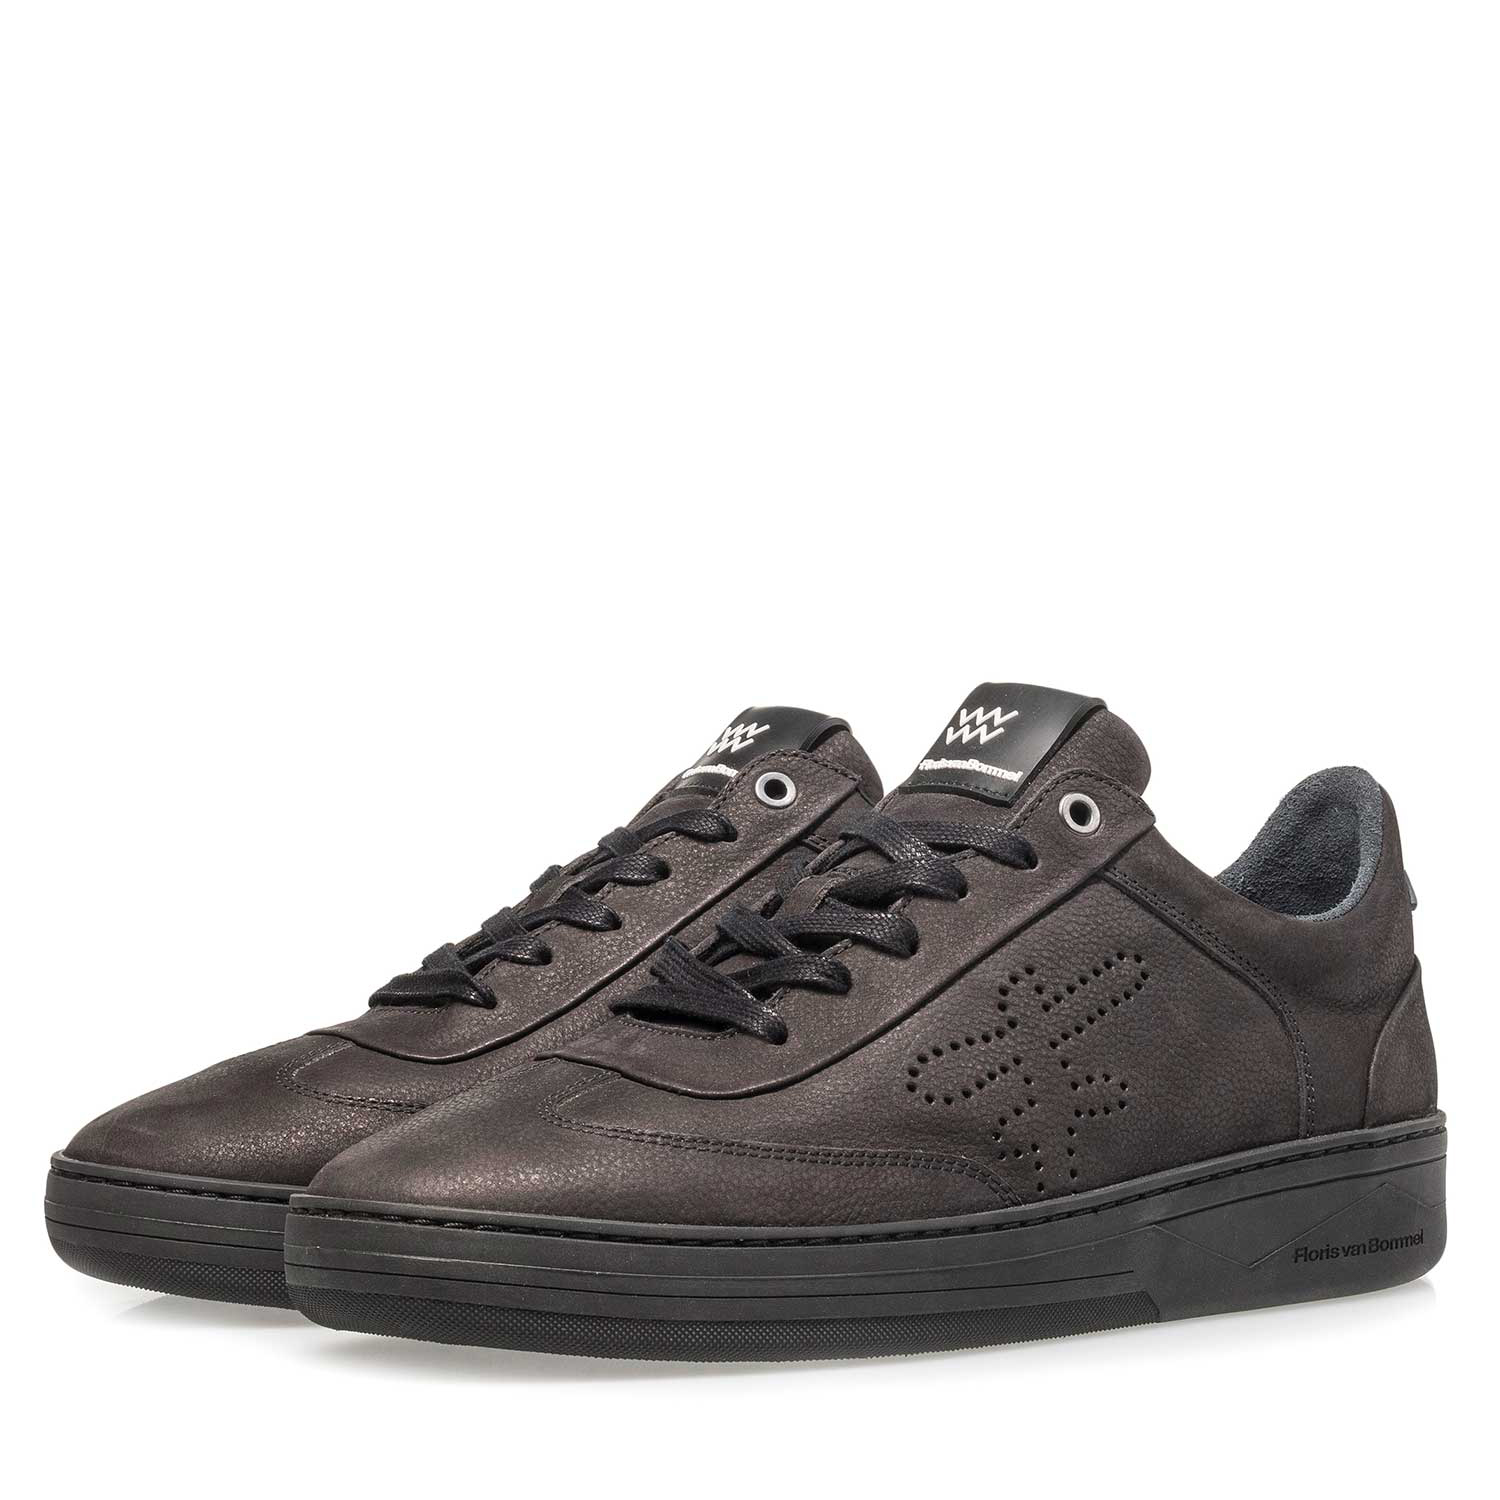 16255/07 - Black printed nubuck leather sneaker